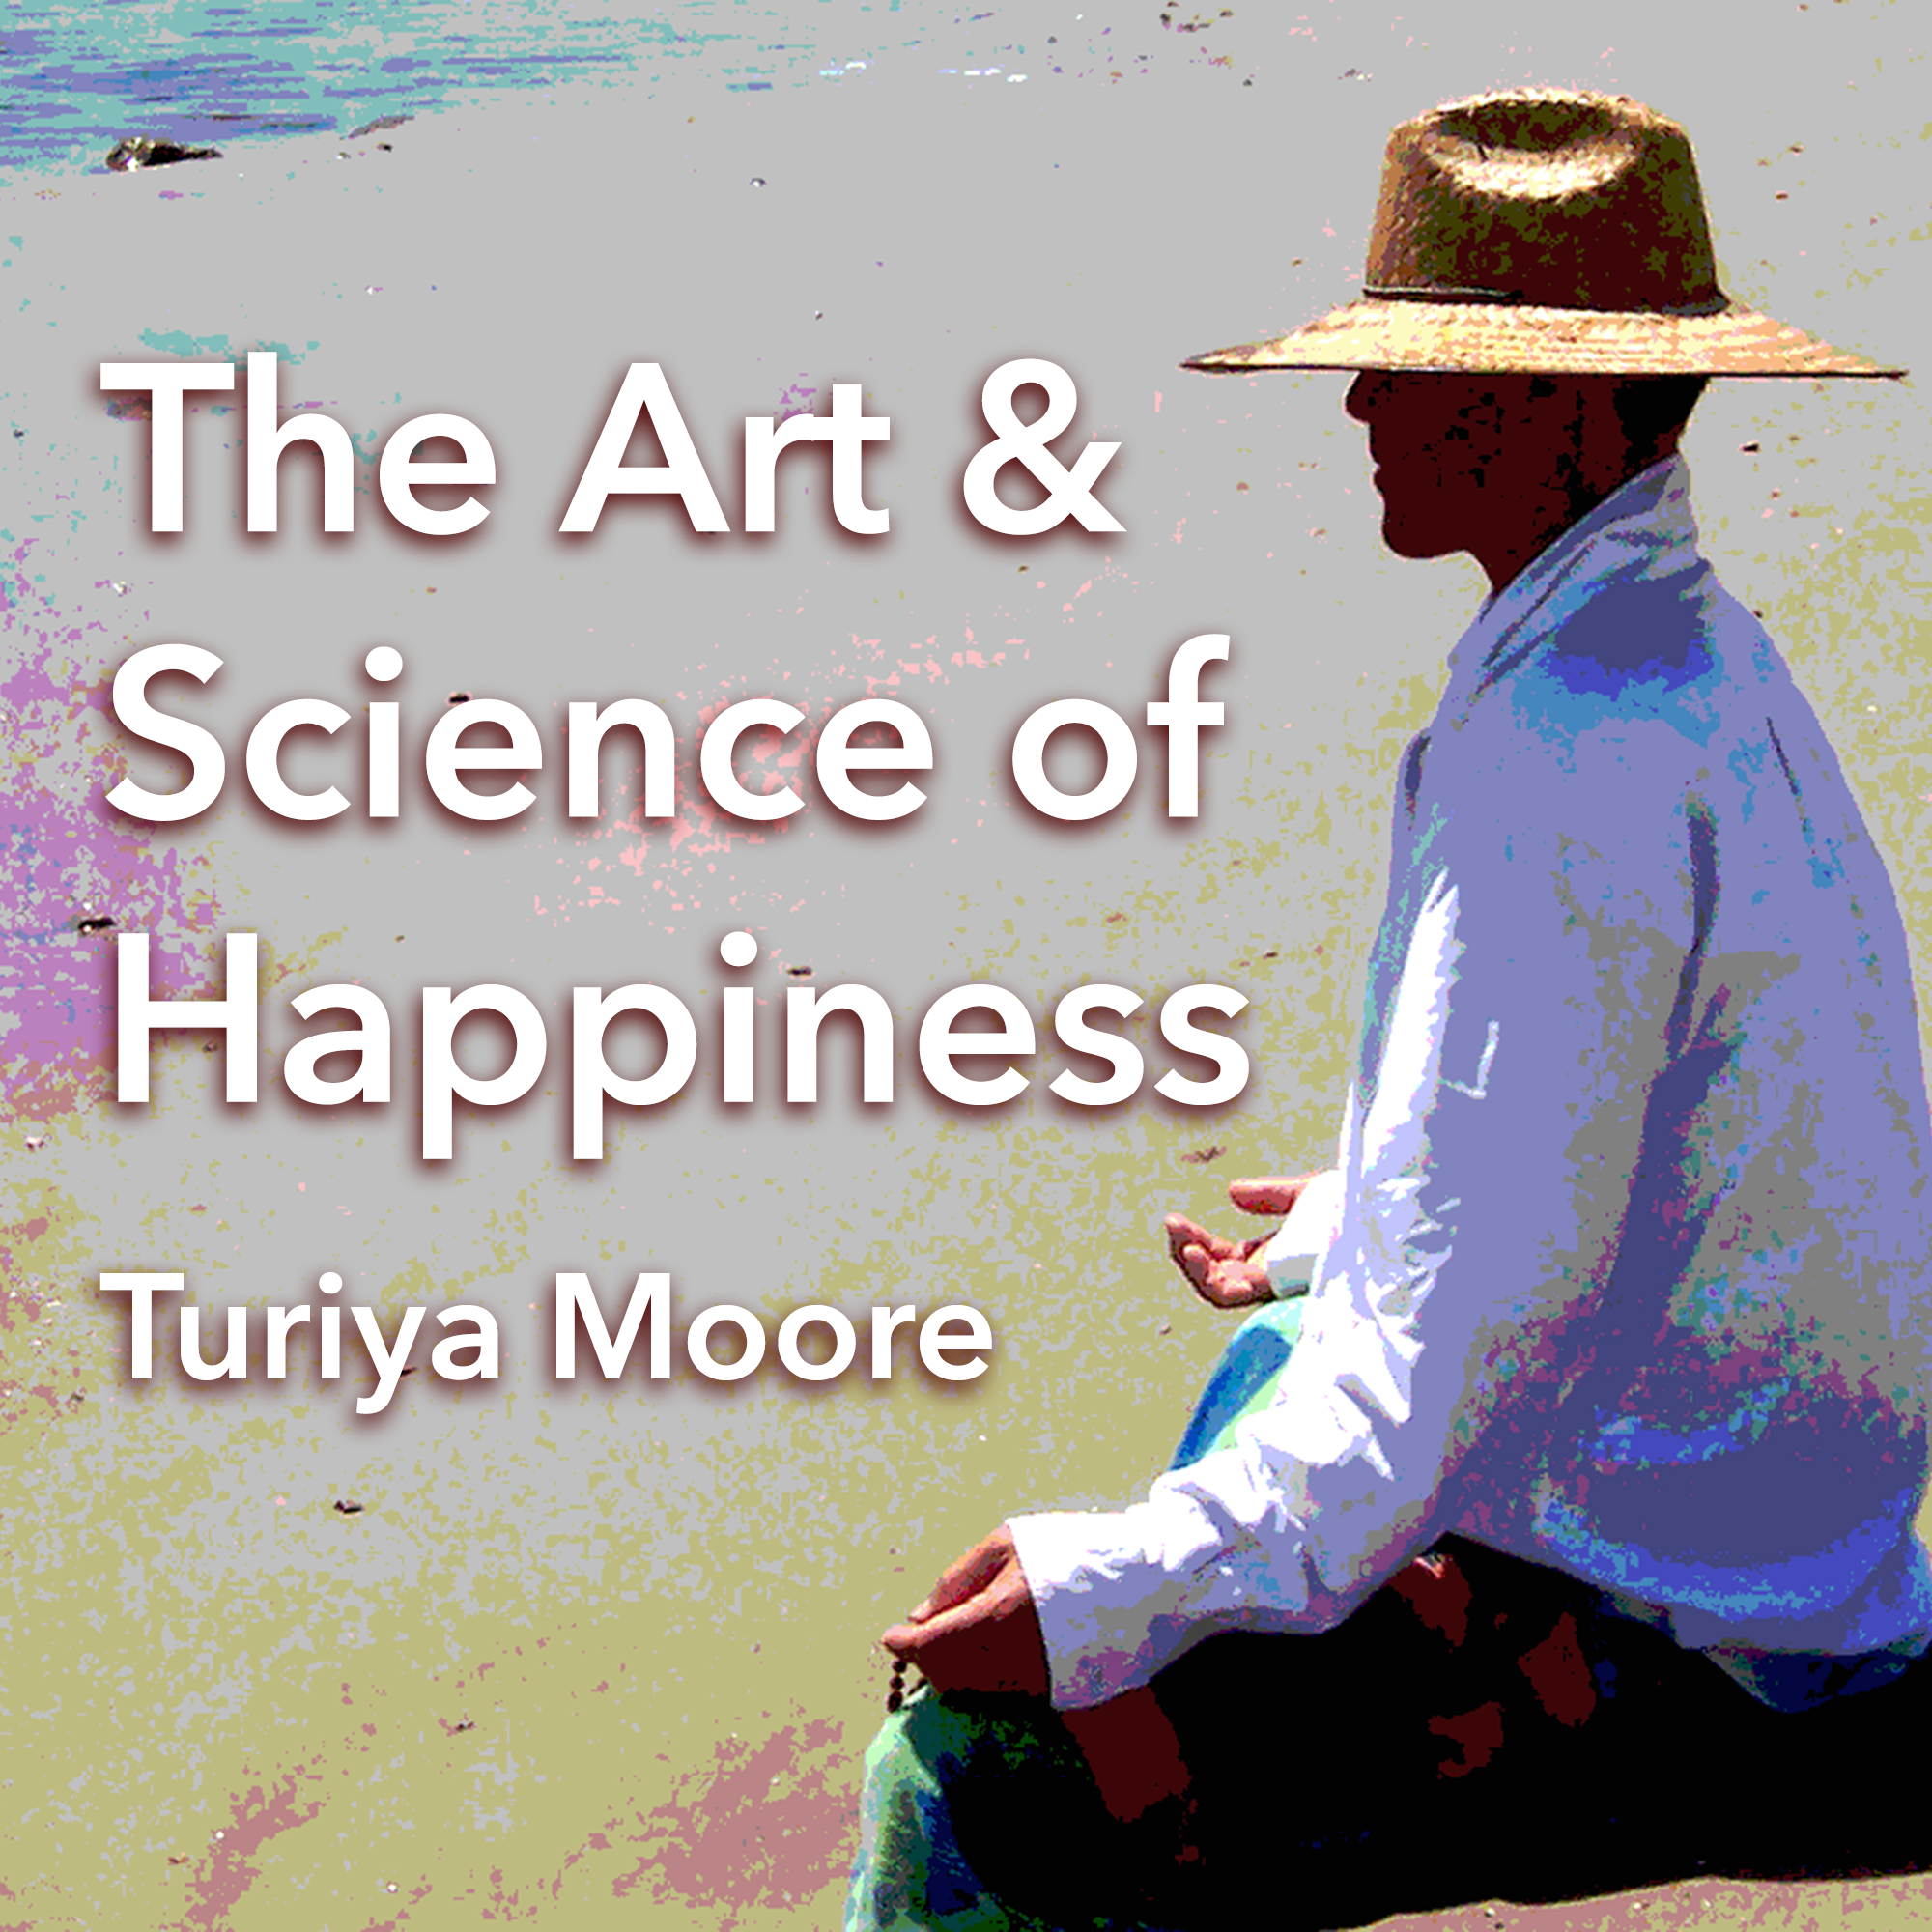 The Art and Science of Happiness with Turiya Moore show art